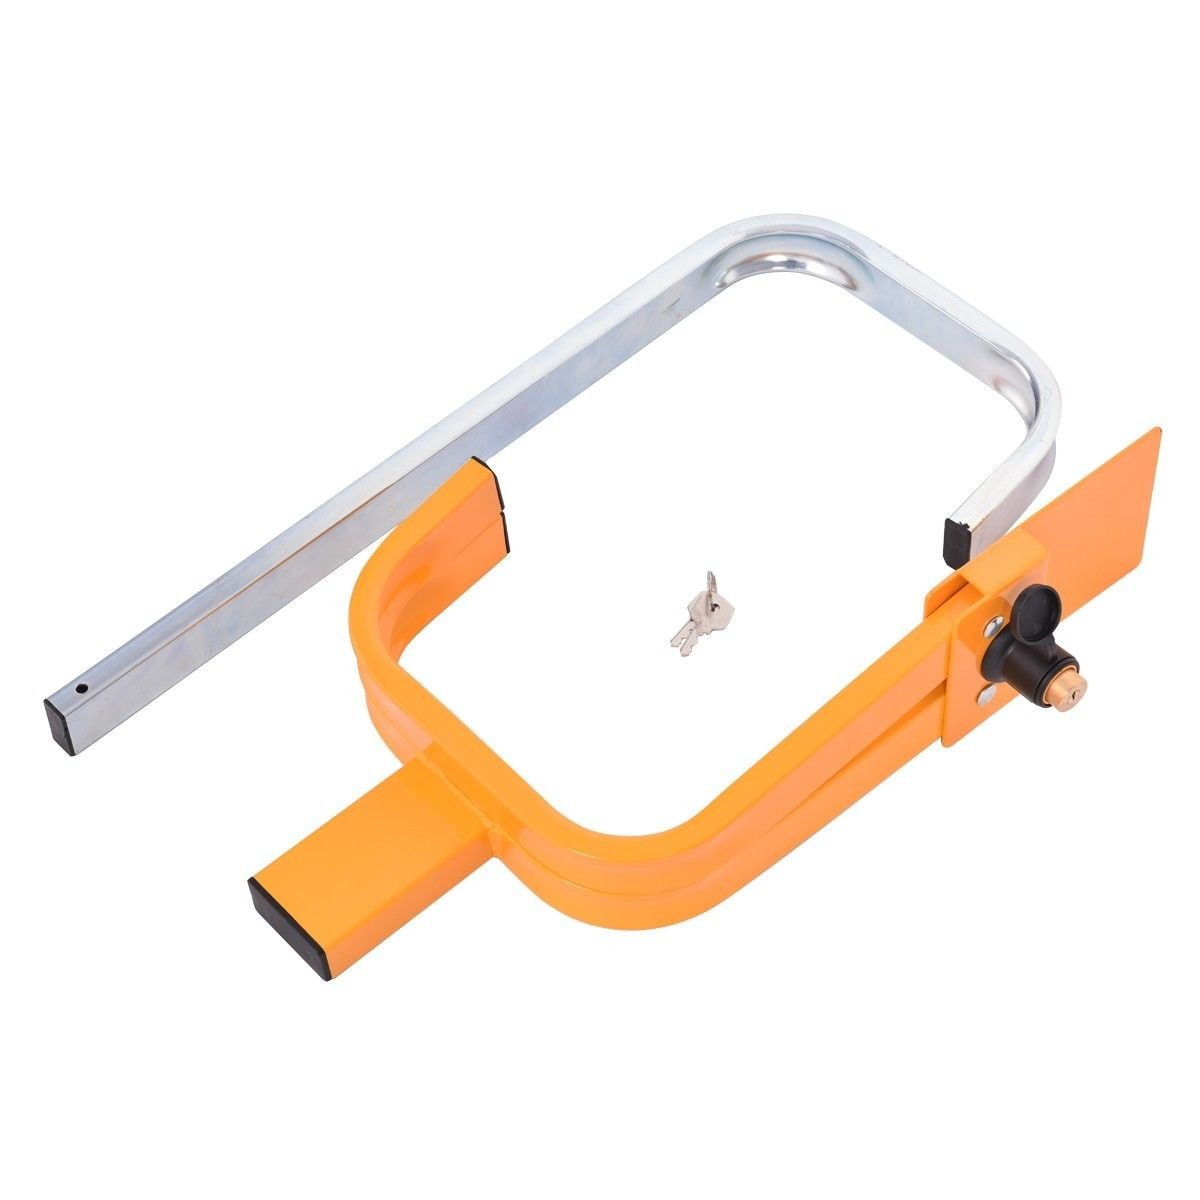 Goplus Wheel Lock Tire Trailer Auto Car Truck Anti-Theft Security Towing Tire Clamp by Goplus (Image #5)